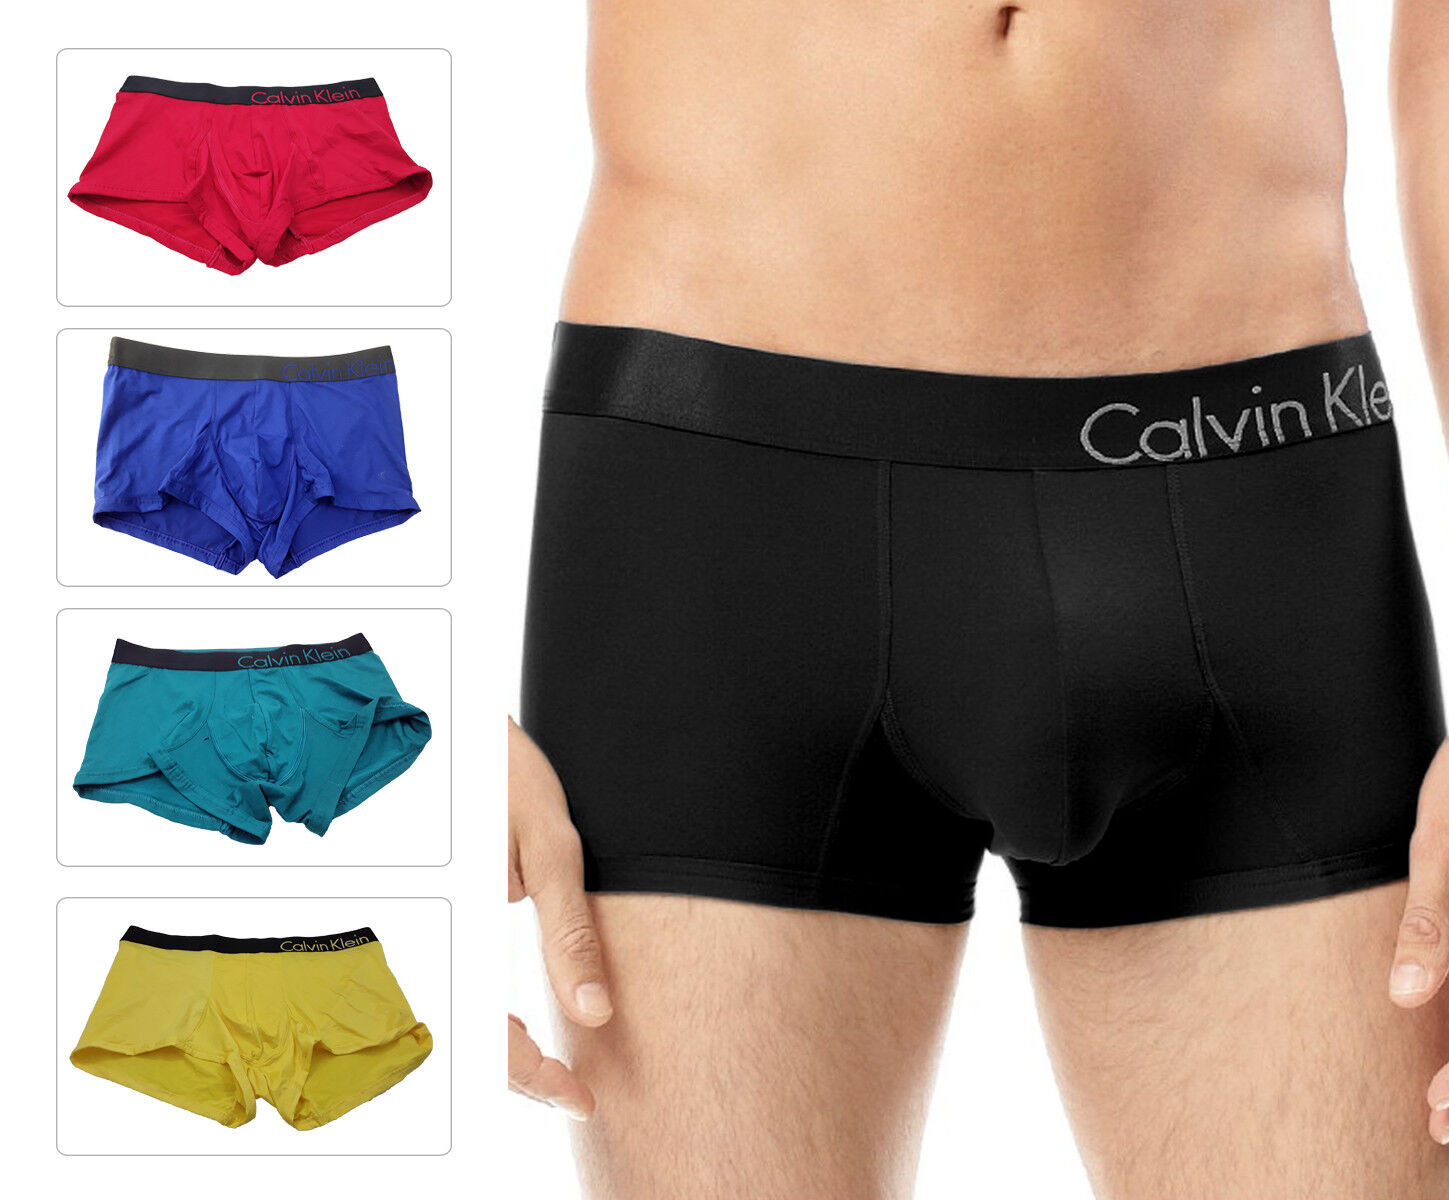 great variety styles 60% clearance extremely unique Details about Calvin Klein Men's Boxer Trunk U8908 CK Bold Low Seamless  Underwear